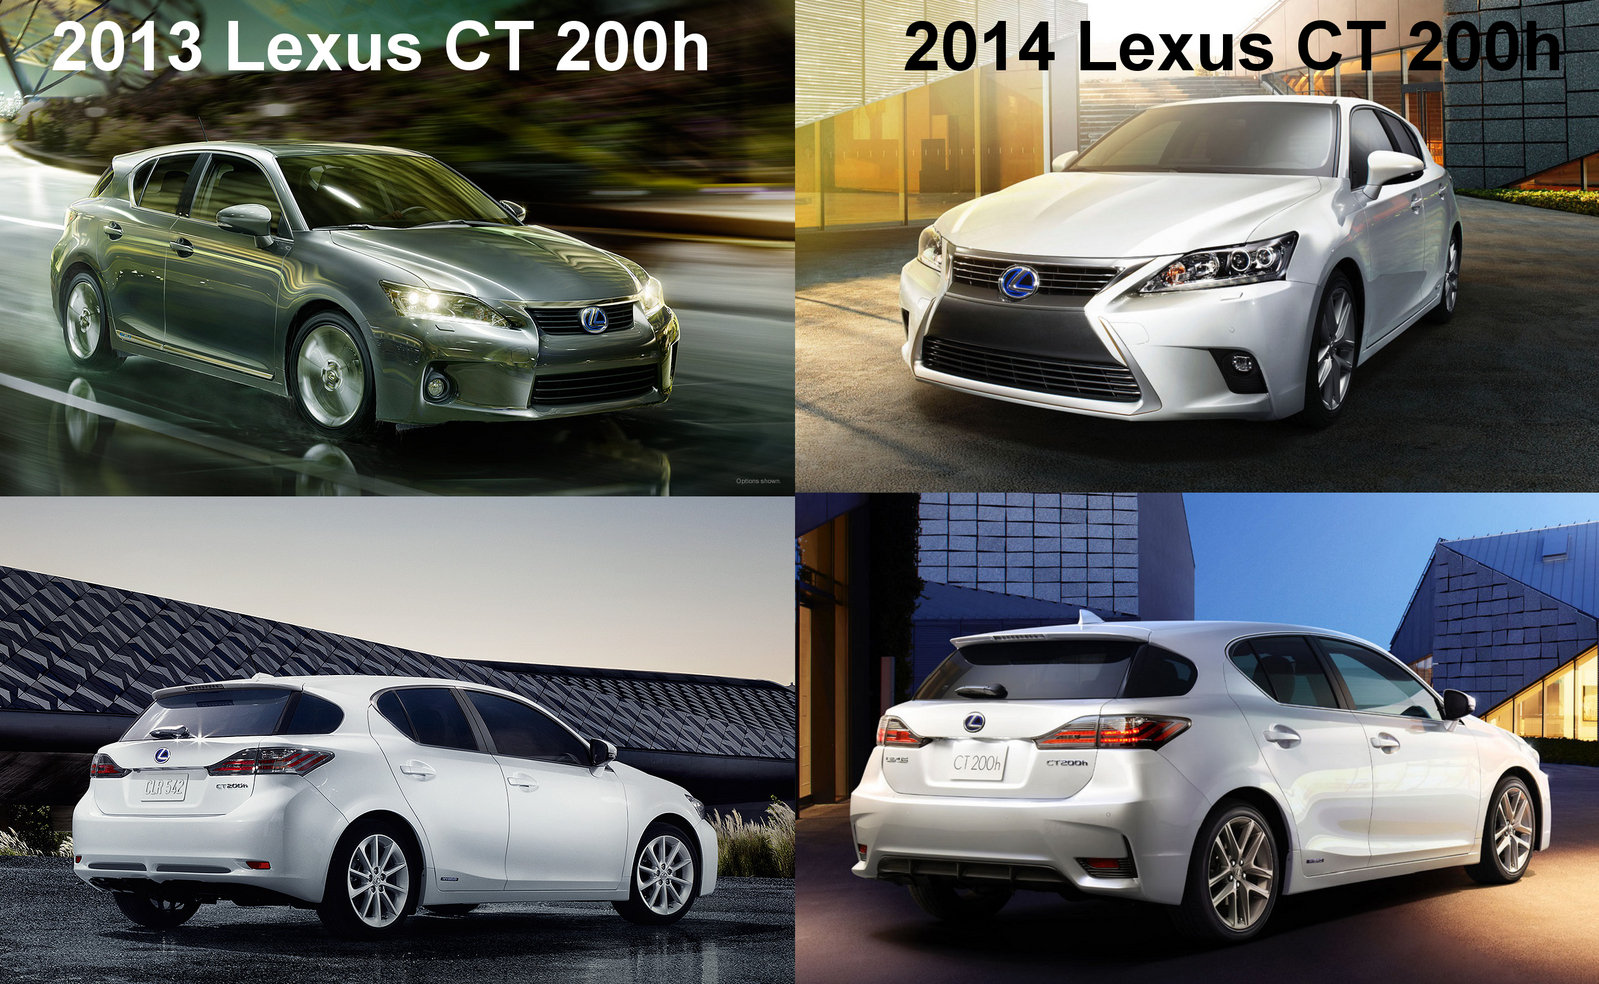 2014 lexus ct 200h picture 532025 car review top speed. Black Bedroom Furniture Sets. Home Design Ideas